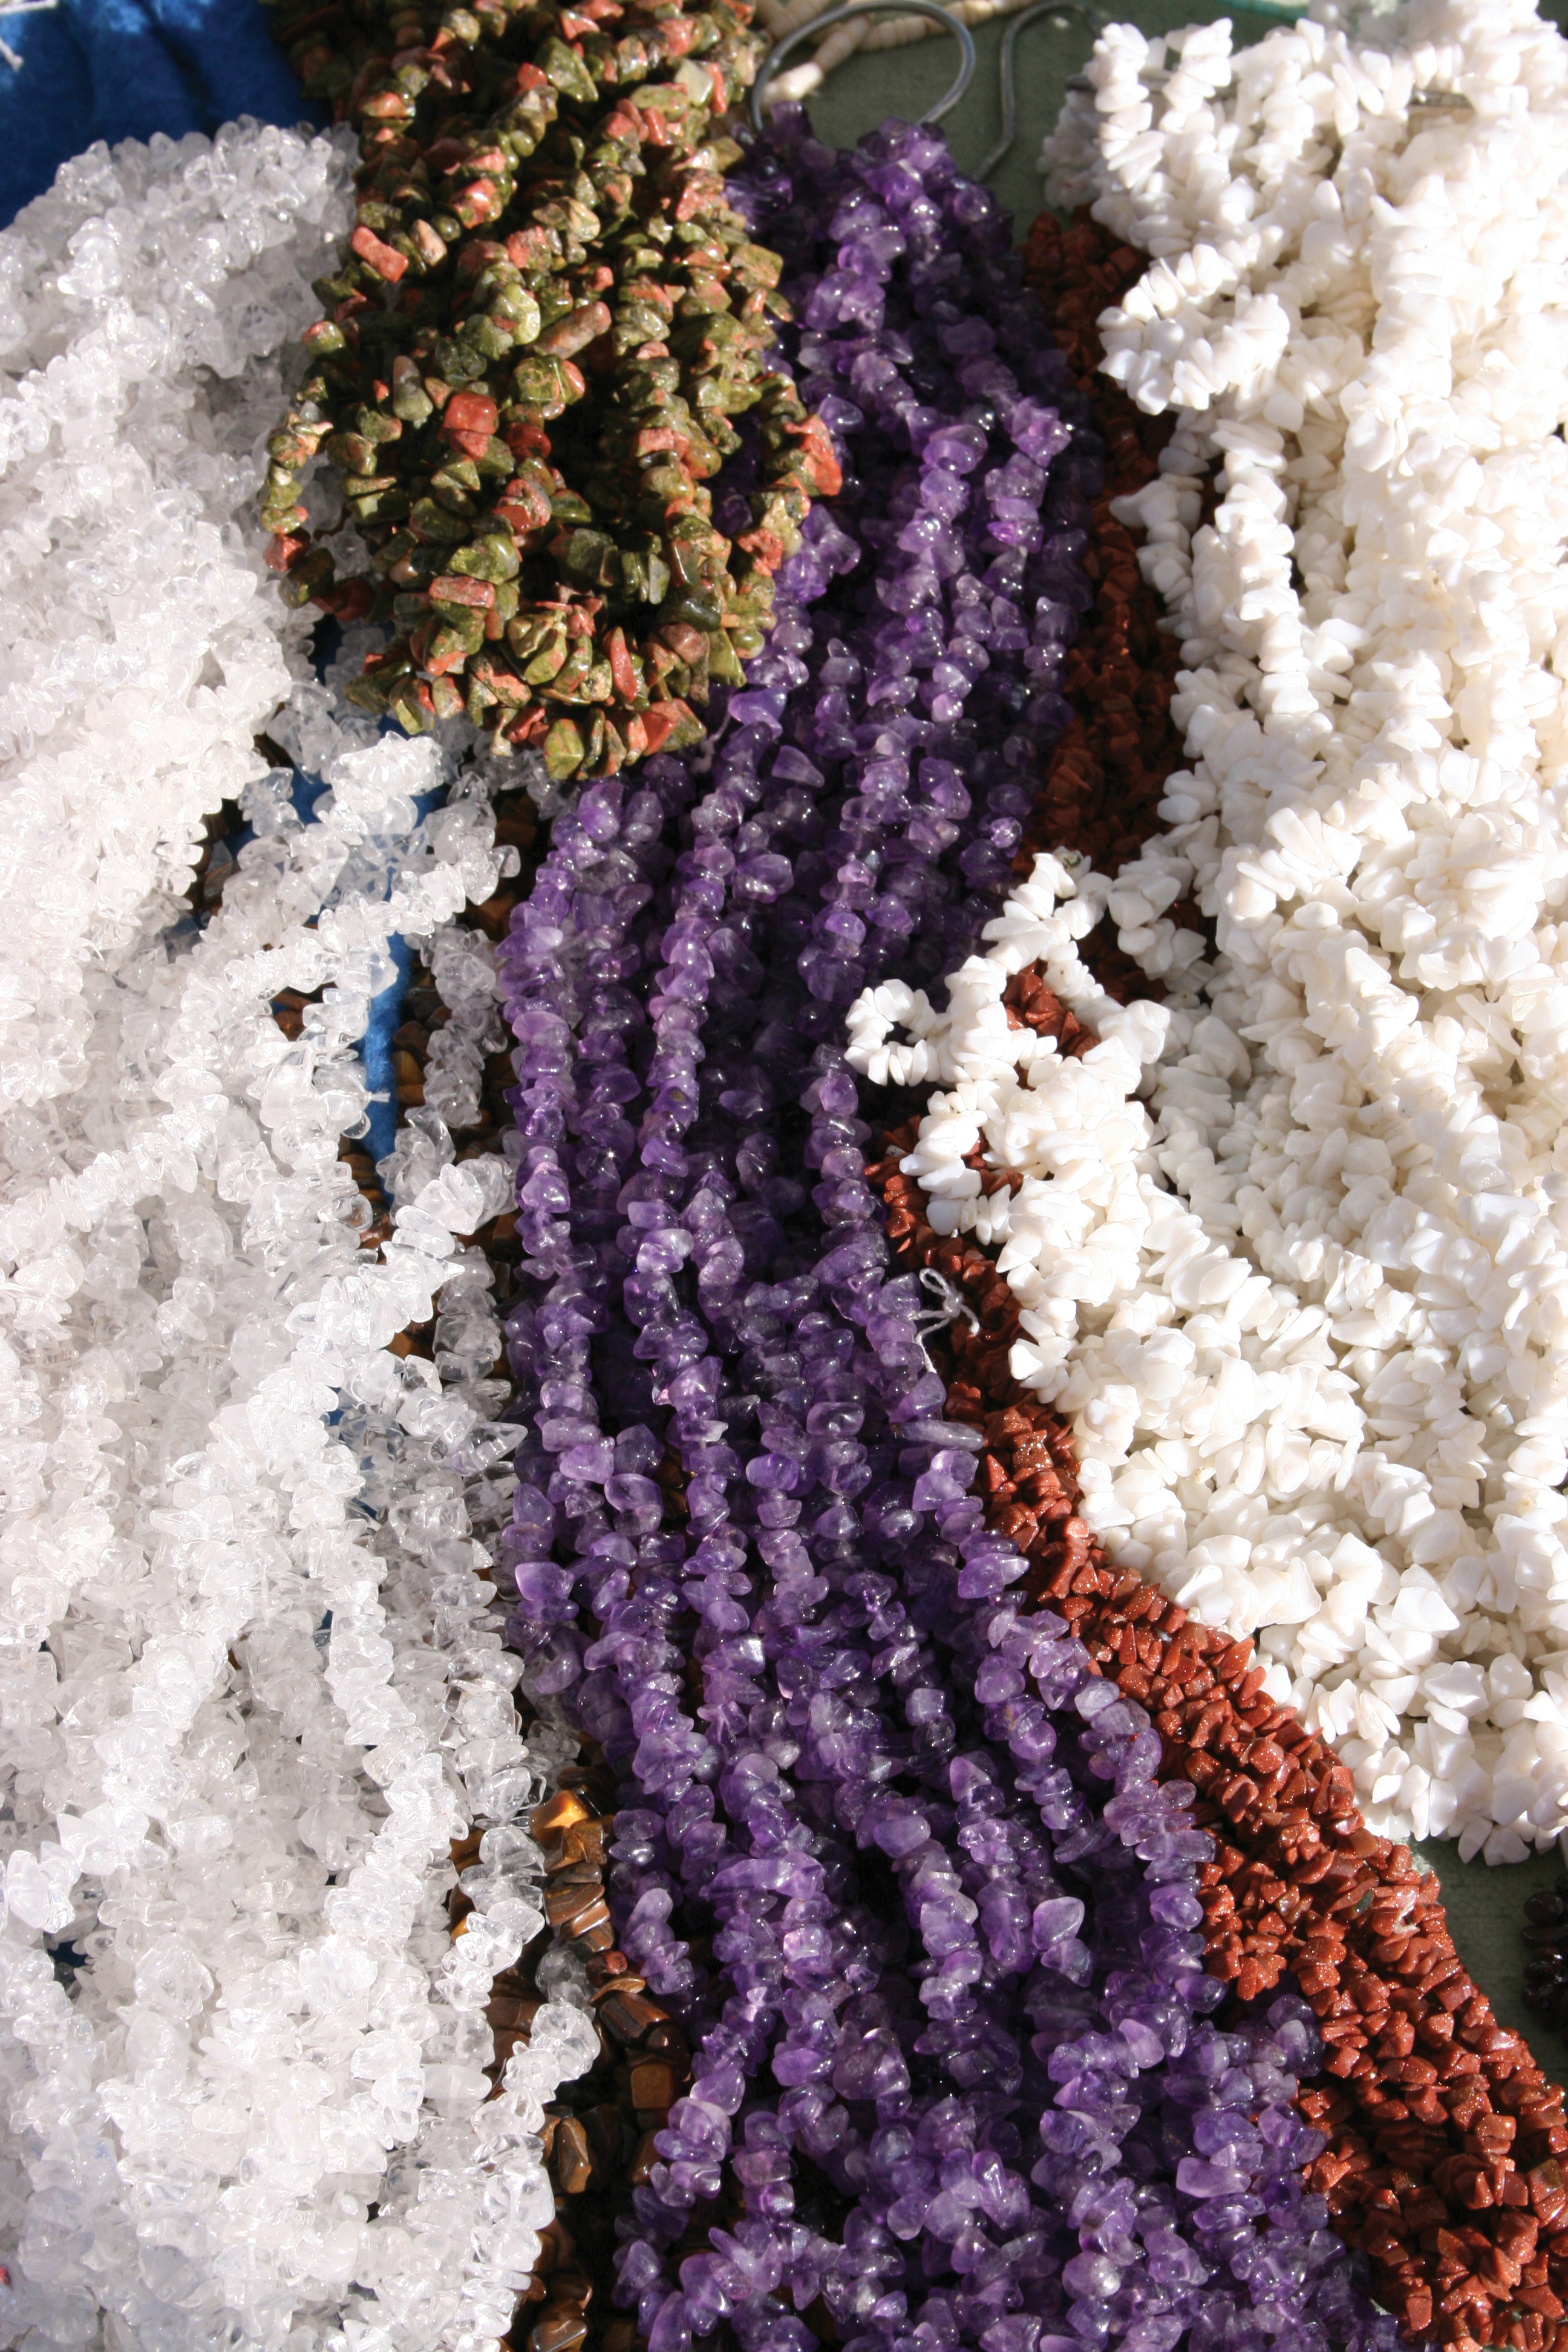 Truckloads of beads find their way to Tucson during the shows, with gemstones from around the globe. Photo Courtesy of Visit Tucson.